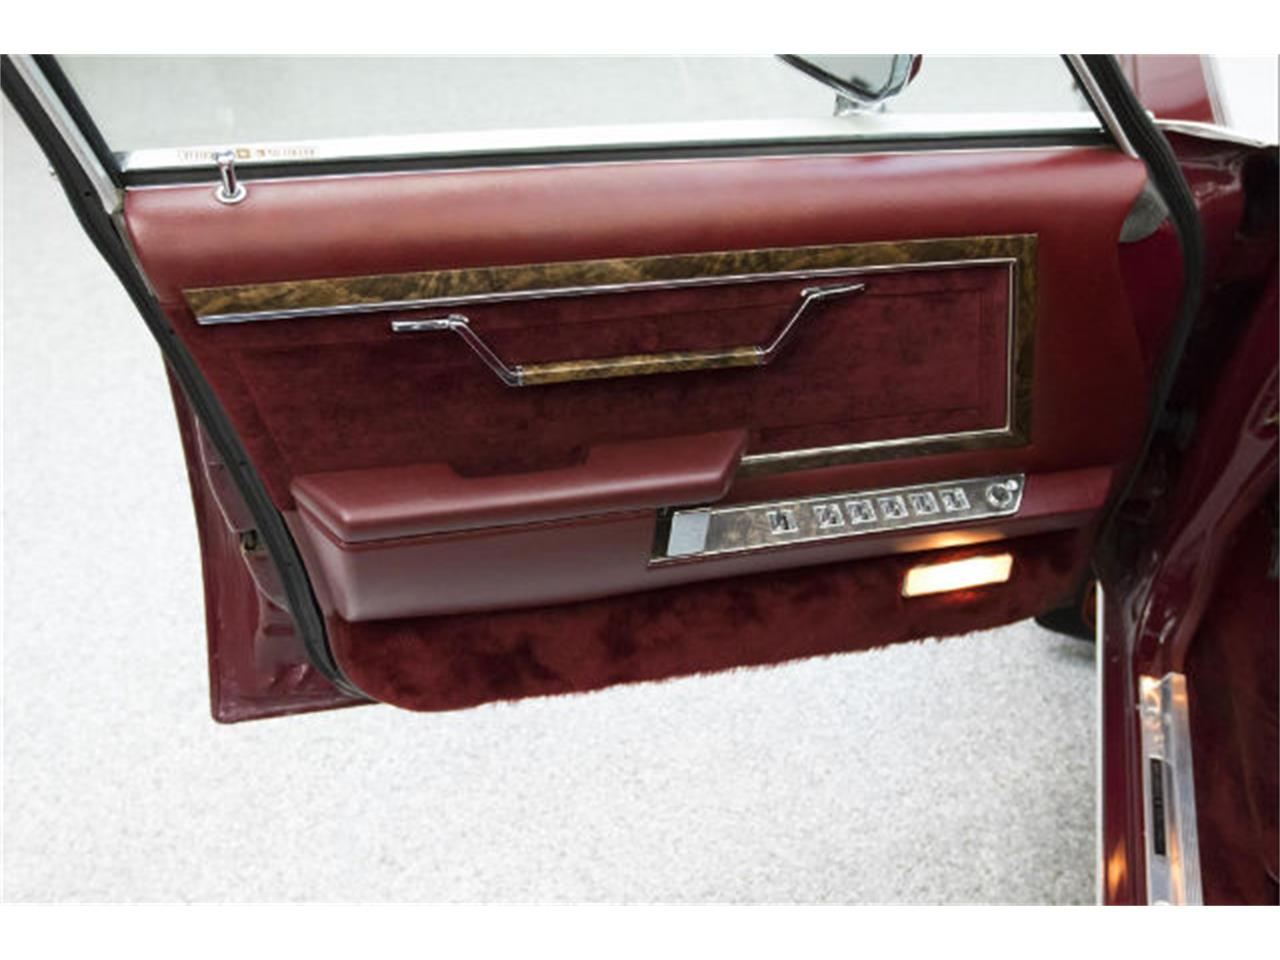 Large Picture of '86 Chrysler Fifth Avenue located in Sioux Falls South Dakota - $13,975.00 Offered by Frankman Motor Company - MFNZ